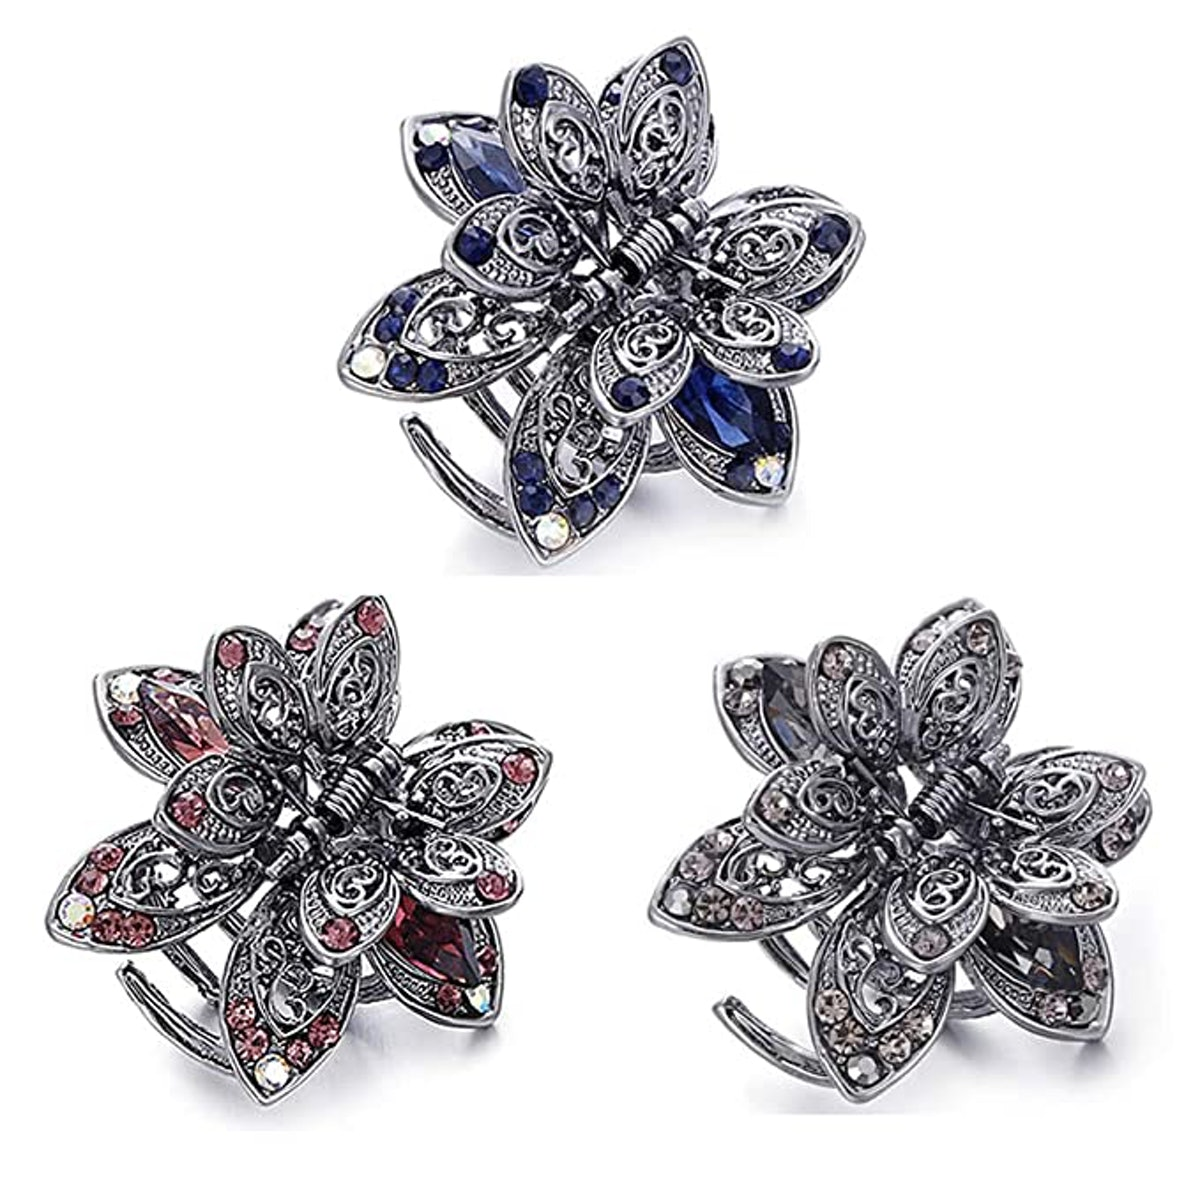 Wsere Mini Vintage Hair Jaw Clips (3-Pack)